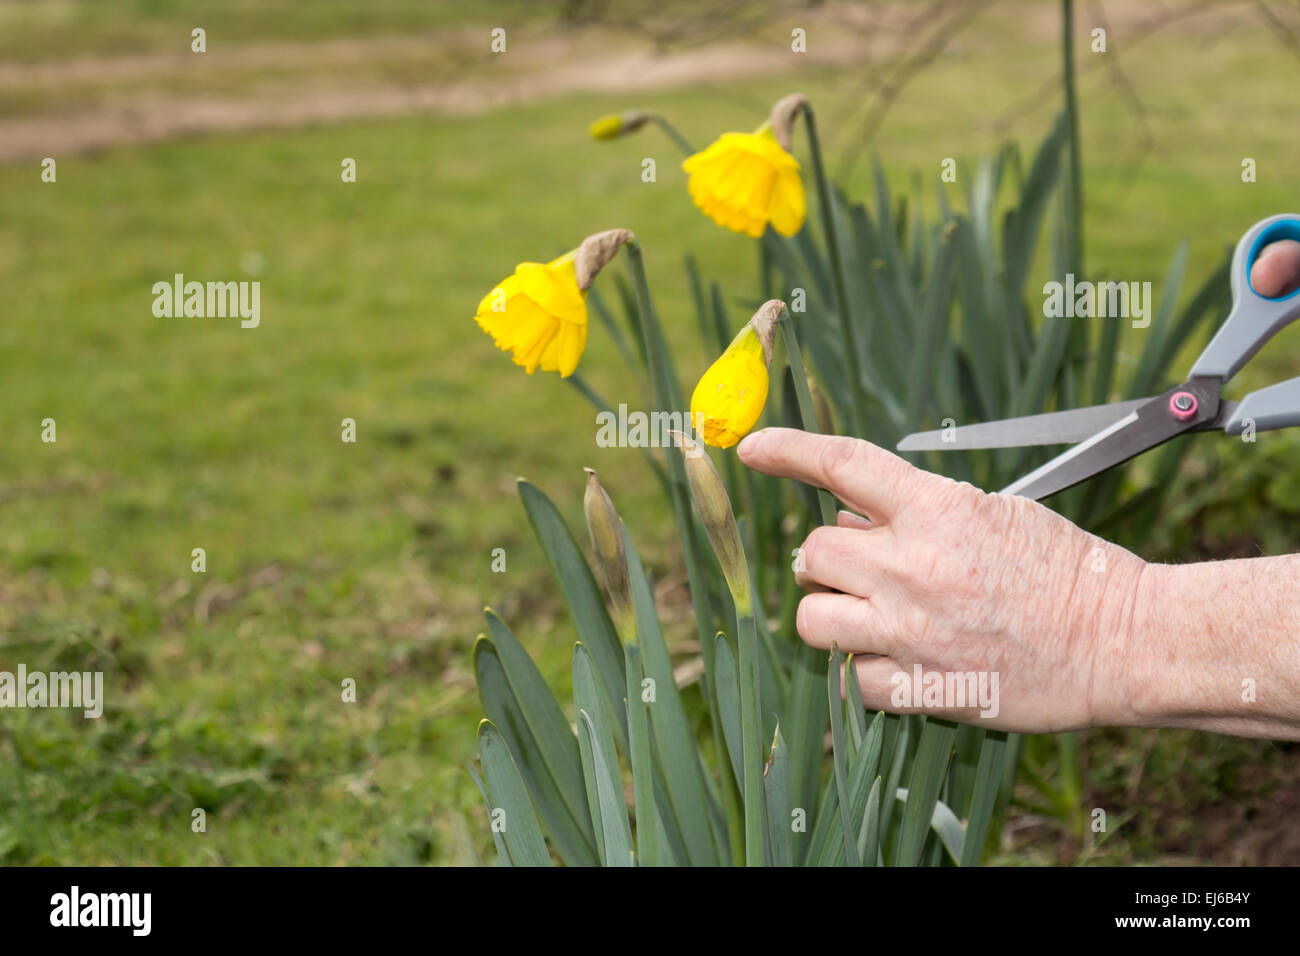 Senior man cutting flowers in the garden - Stock Image